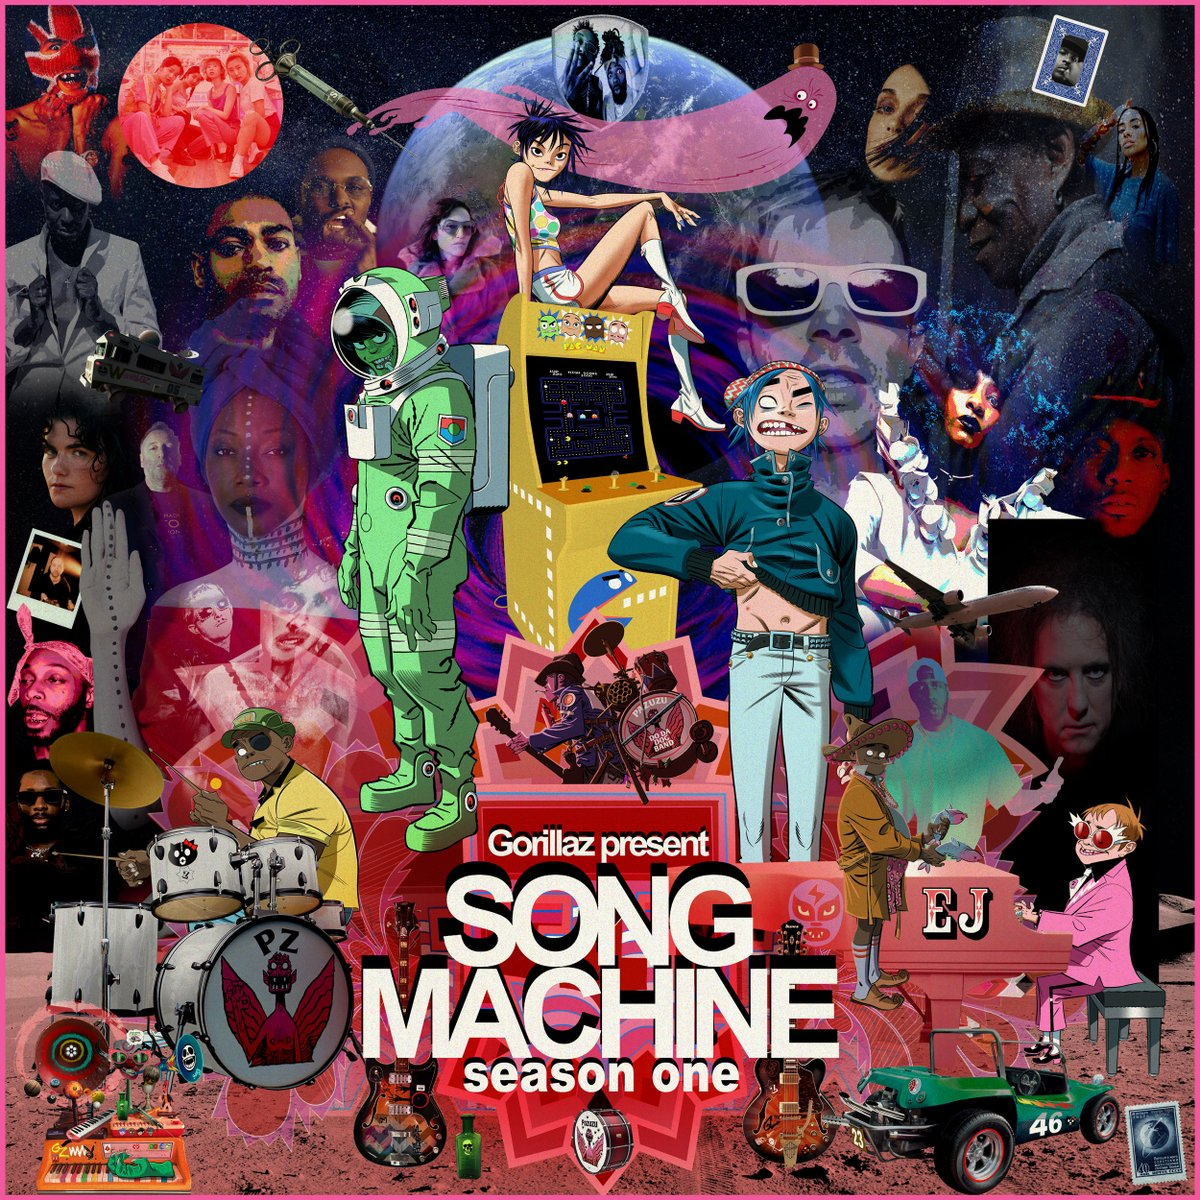 Introducing the all-star cast of Song Machine Season One ✨STRANGE TIMEZ✨  Featuring: @slowthai @Beck @st_vincent @eltonofficial  @TheRealKano @MikeWiLLMadeIt @georgiauk_ @ScHoolboyQ @CHAIofficialJPN @FatouDiawara & many more  Pre-order 👉 https://t.co/CkN1CrFP8k   #SongMachine https://t.co/M7rMWSsYjY